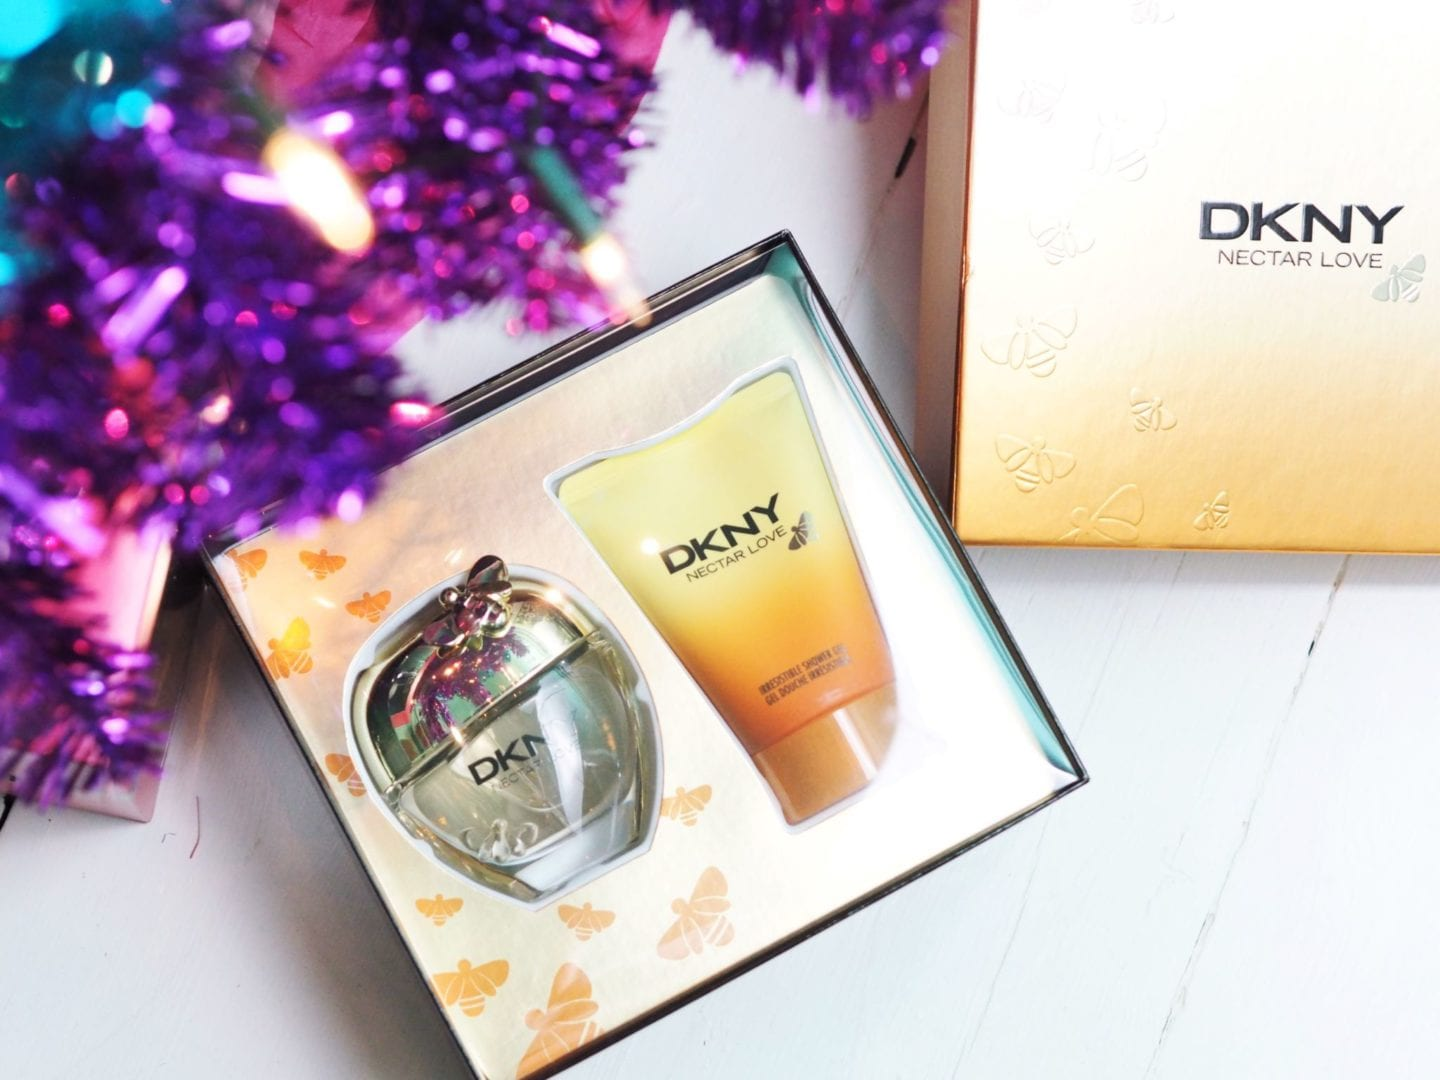 DKNY-Nectar-Love-Gift-Set